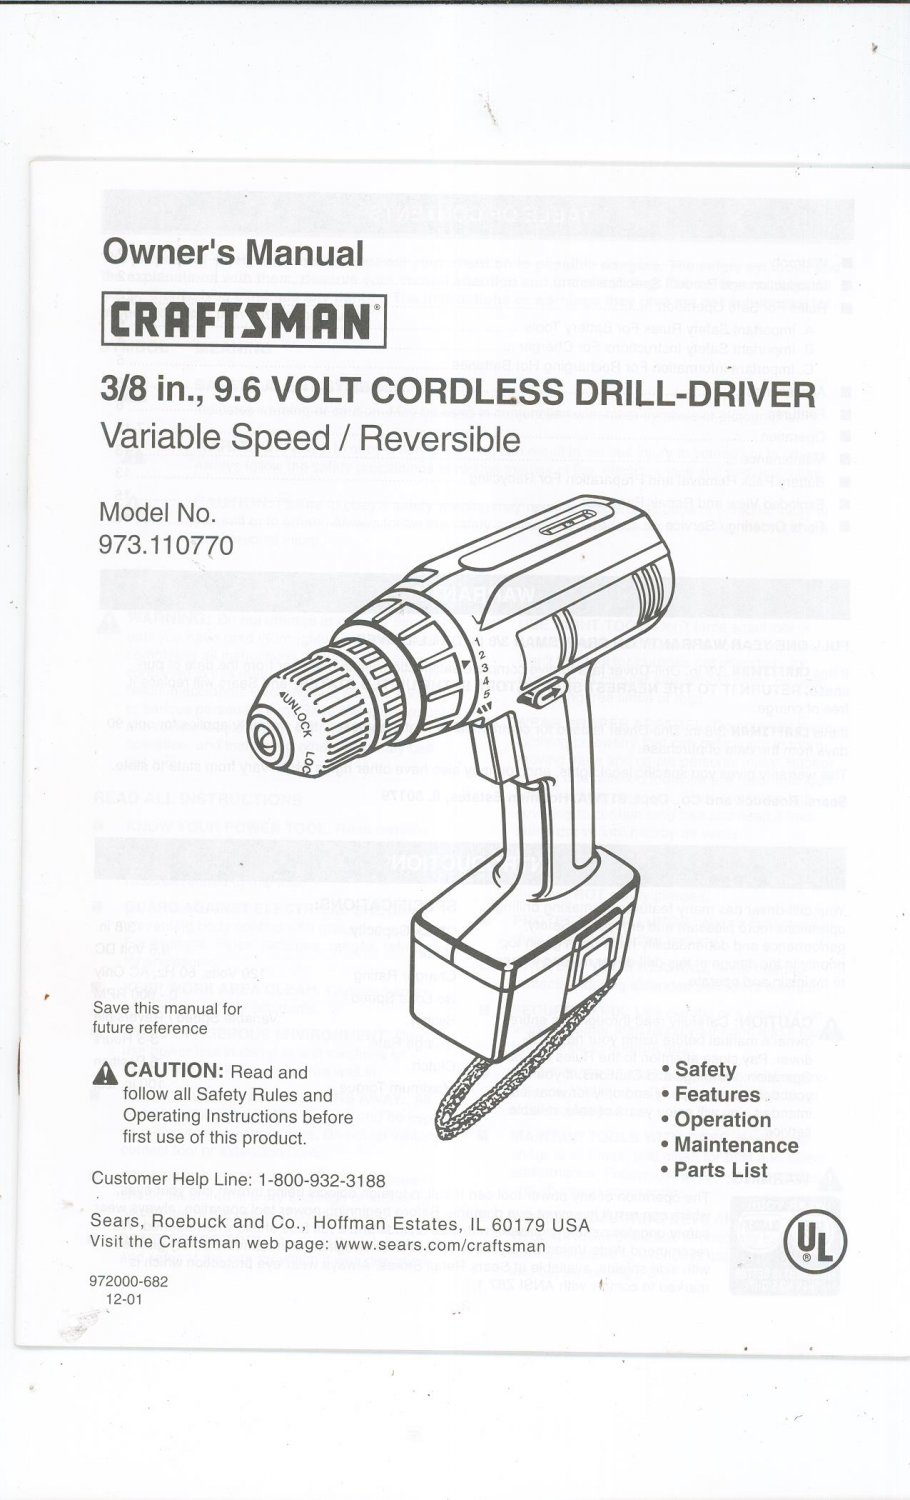 Craftsman Variable Speed Cordless 3/8 In. Cordless Drill